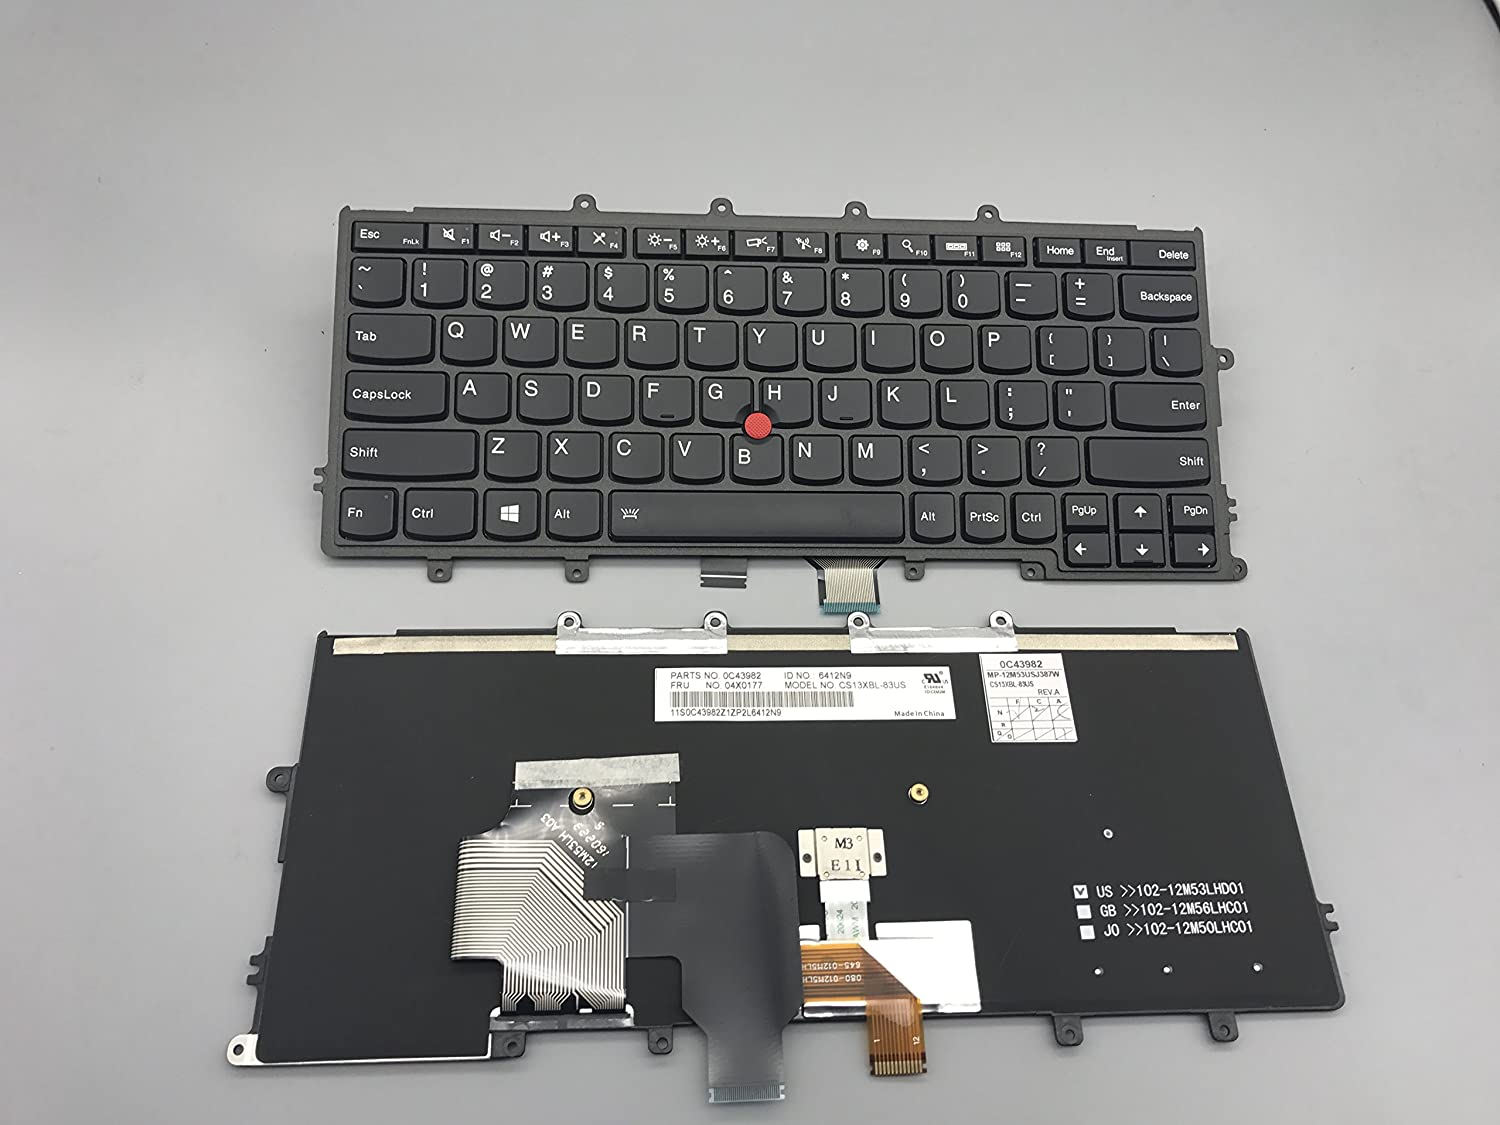 Replacement Keyboard for Lenovo IBM Thinkpad X240 X240S X240I Laptop with Backlight 04X0177, 0C43982, 04X0215 MP-12M53USJ387W 6412N9